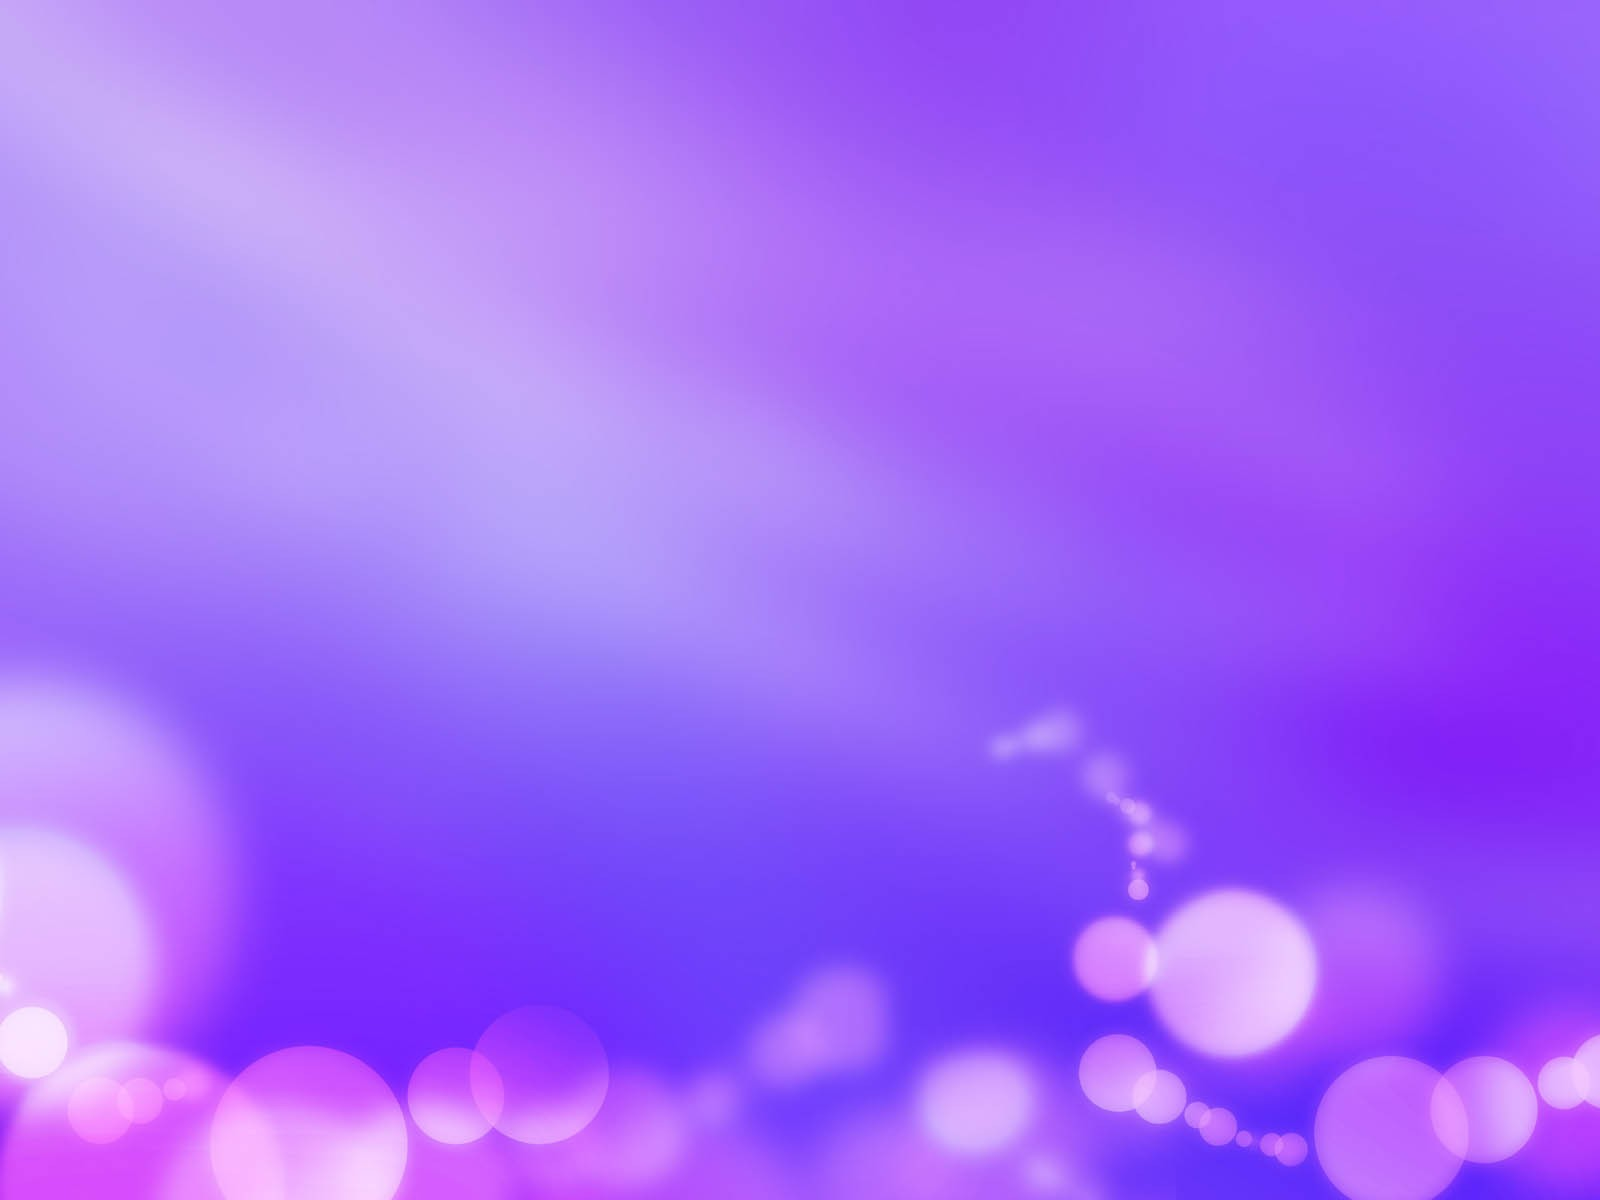 http://4.bp.blogspot.com/-Uz8khMvI2C0/UFF9JXpv16I/AAAAAAAAGCA/thNkhLiiUac/s1600/Purple-Textured-HD-Wallpaper-background-for-Desktop+%284%29.jpg